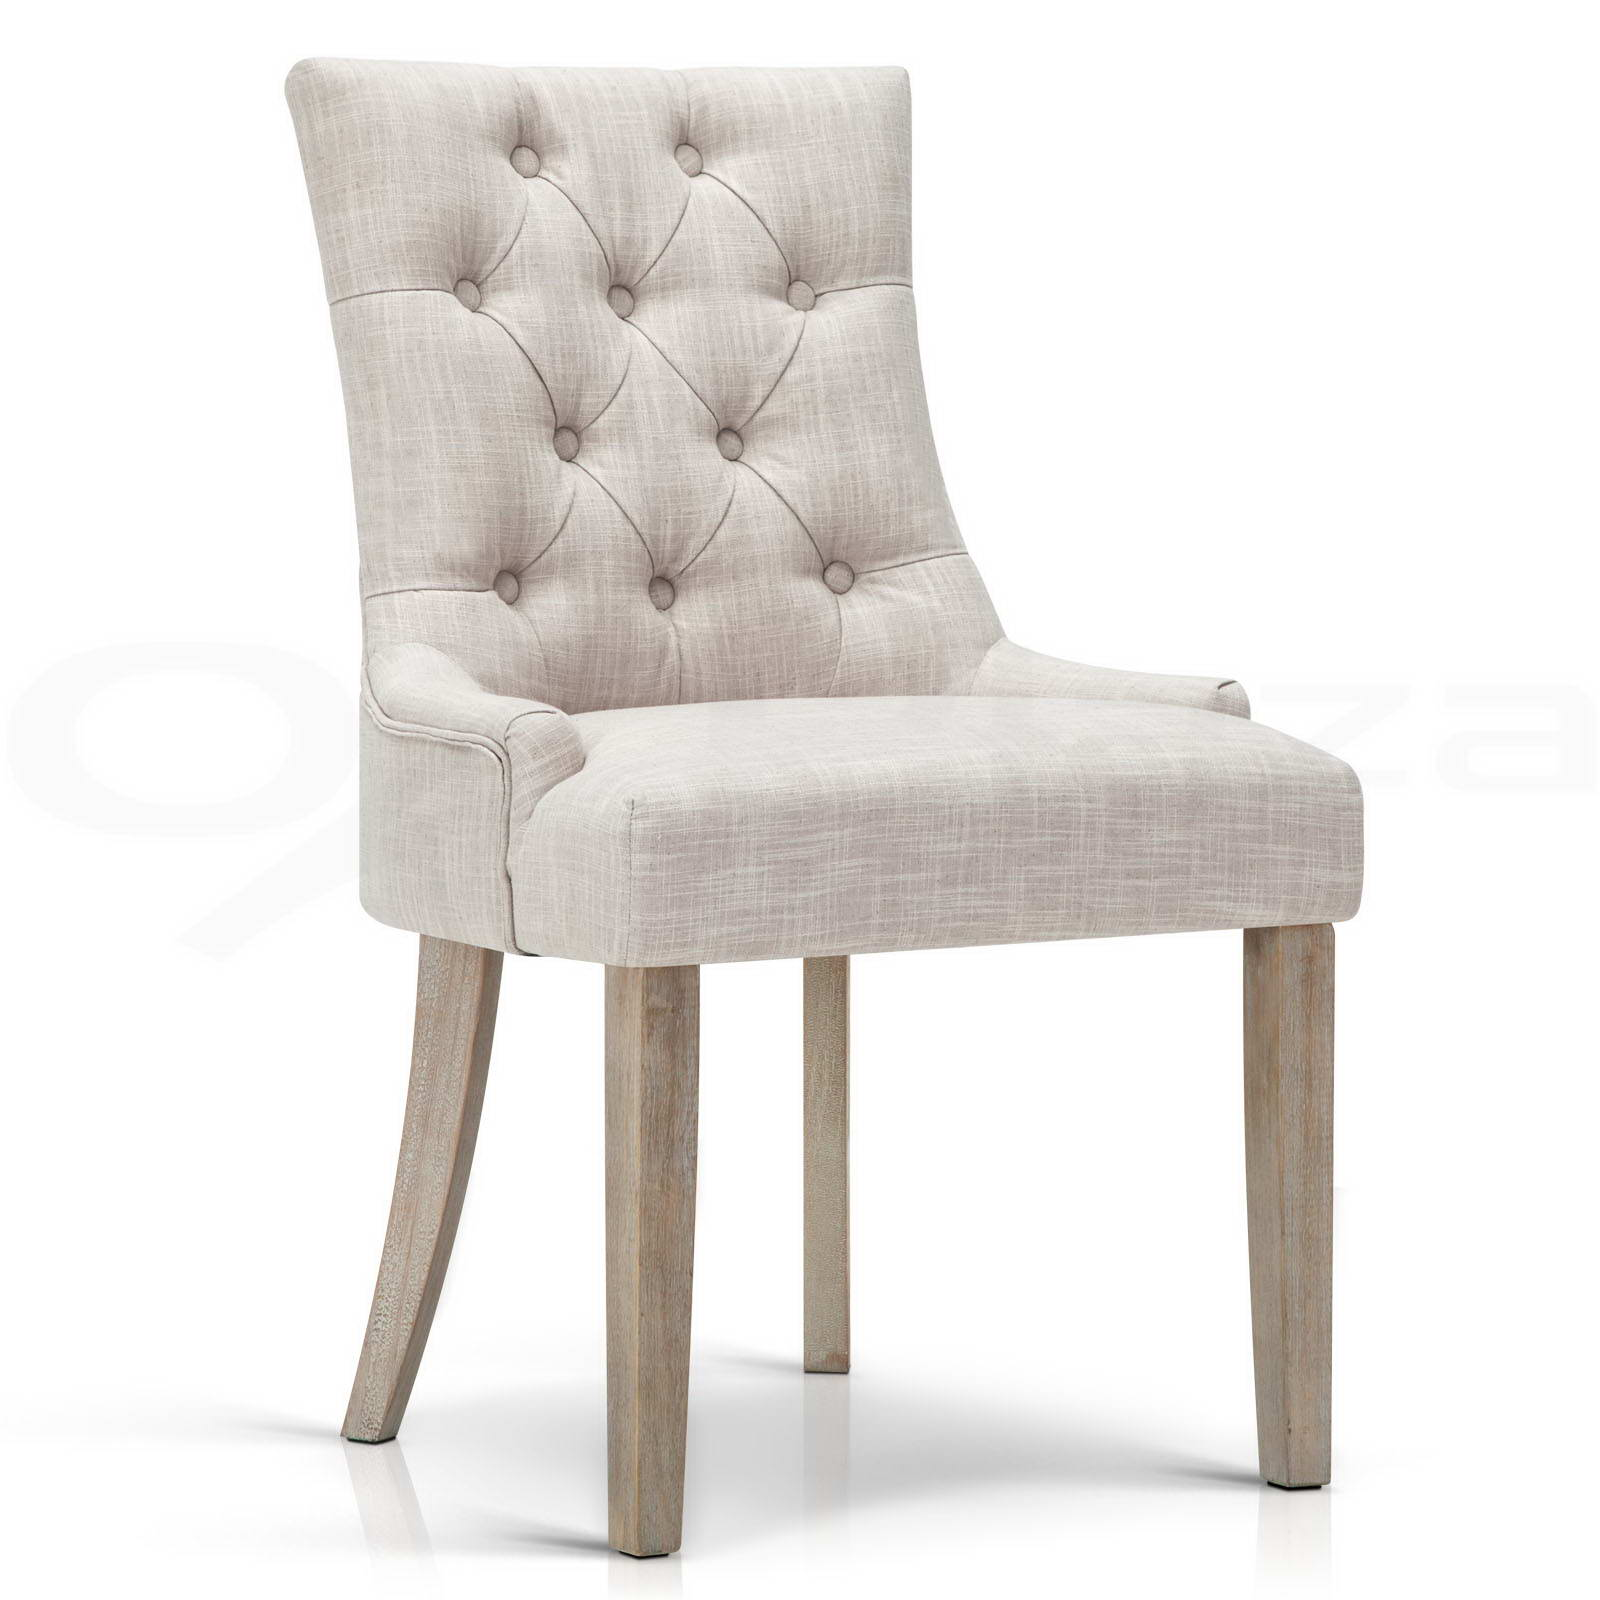 CAYES DINING Chair Linen Fabric French Provincial Wood